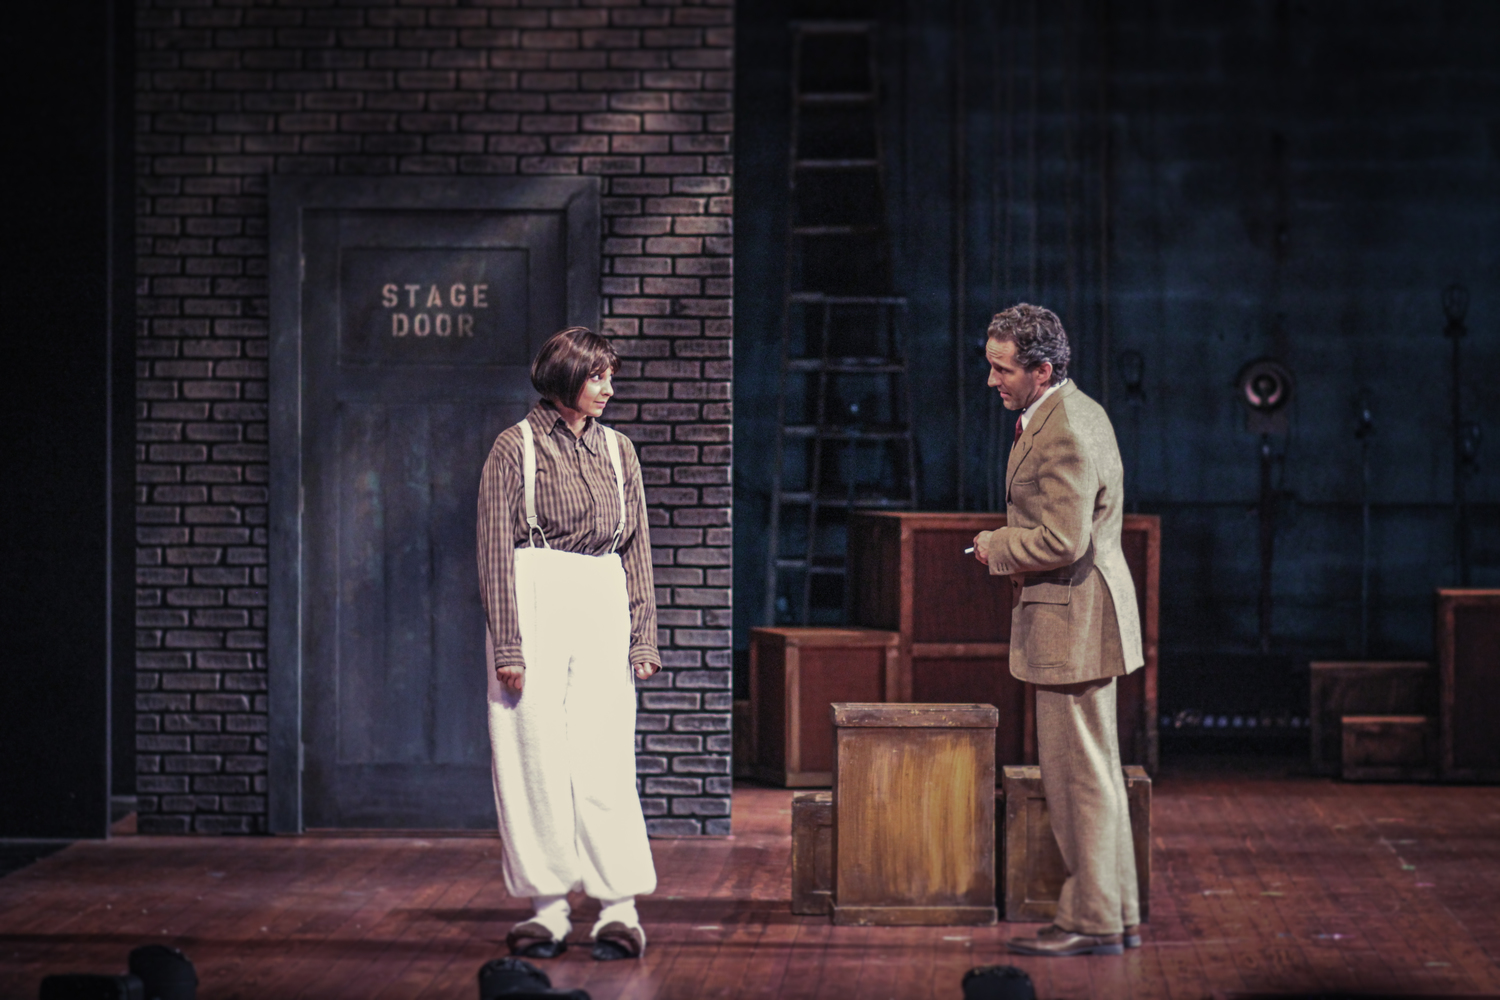 Amandina Altomare and Scott Ripley in  Gypsy  at Connecticut Repertory Theatre. Directed and Produced by Vincent J. Cardinal